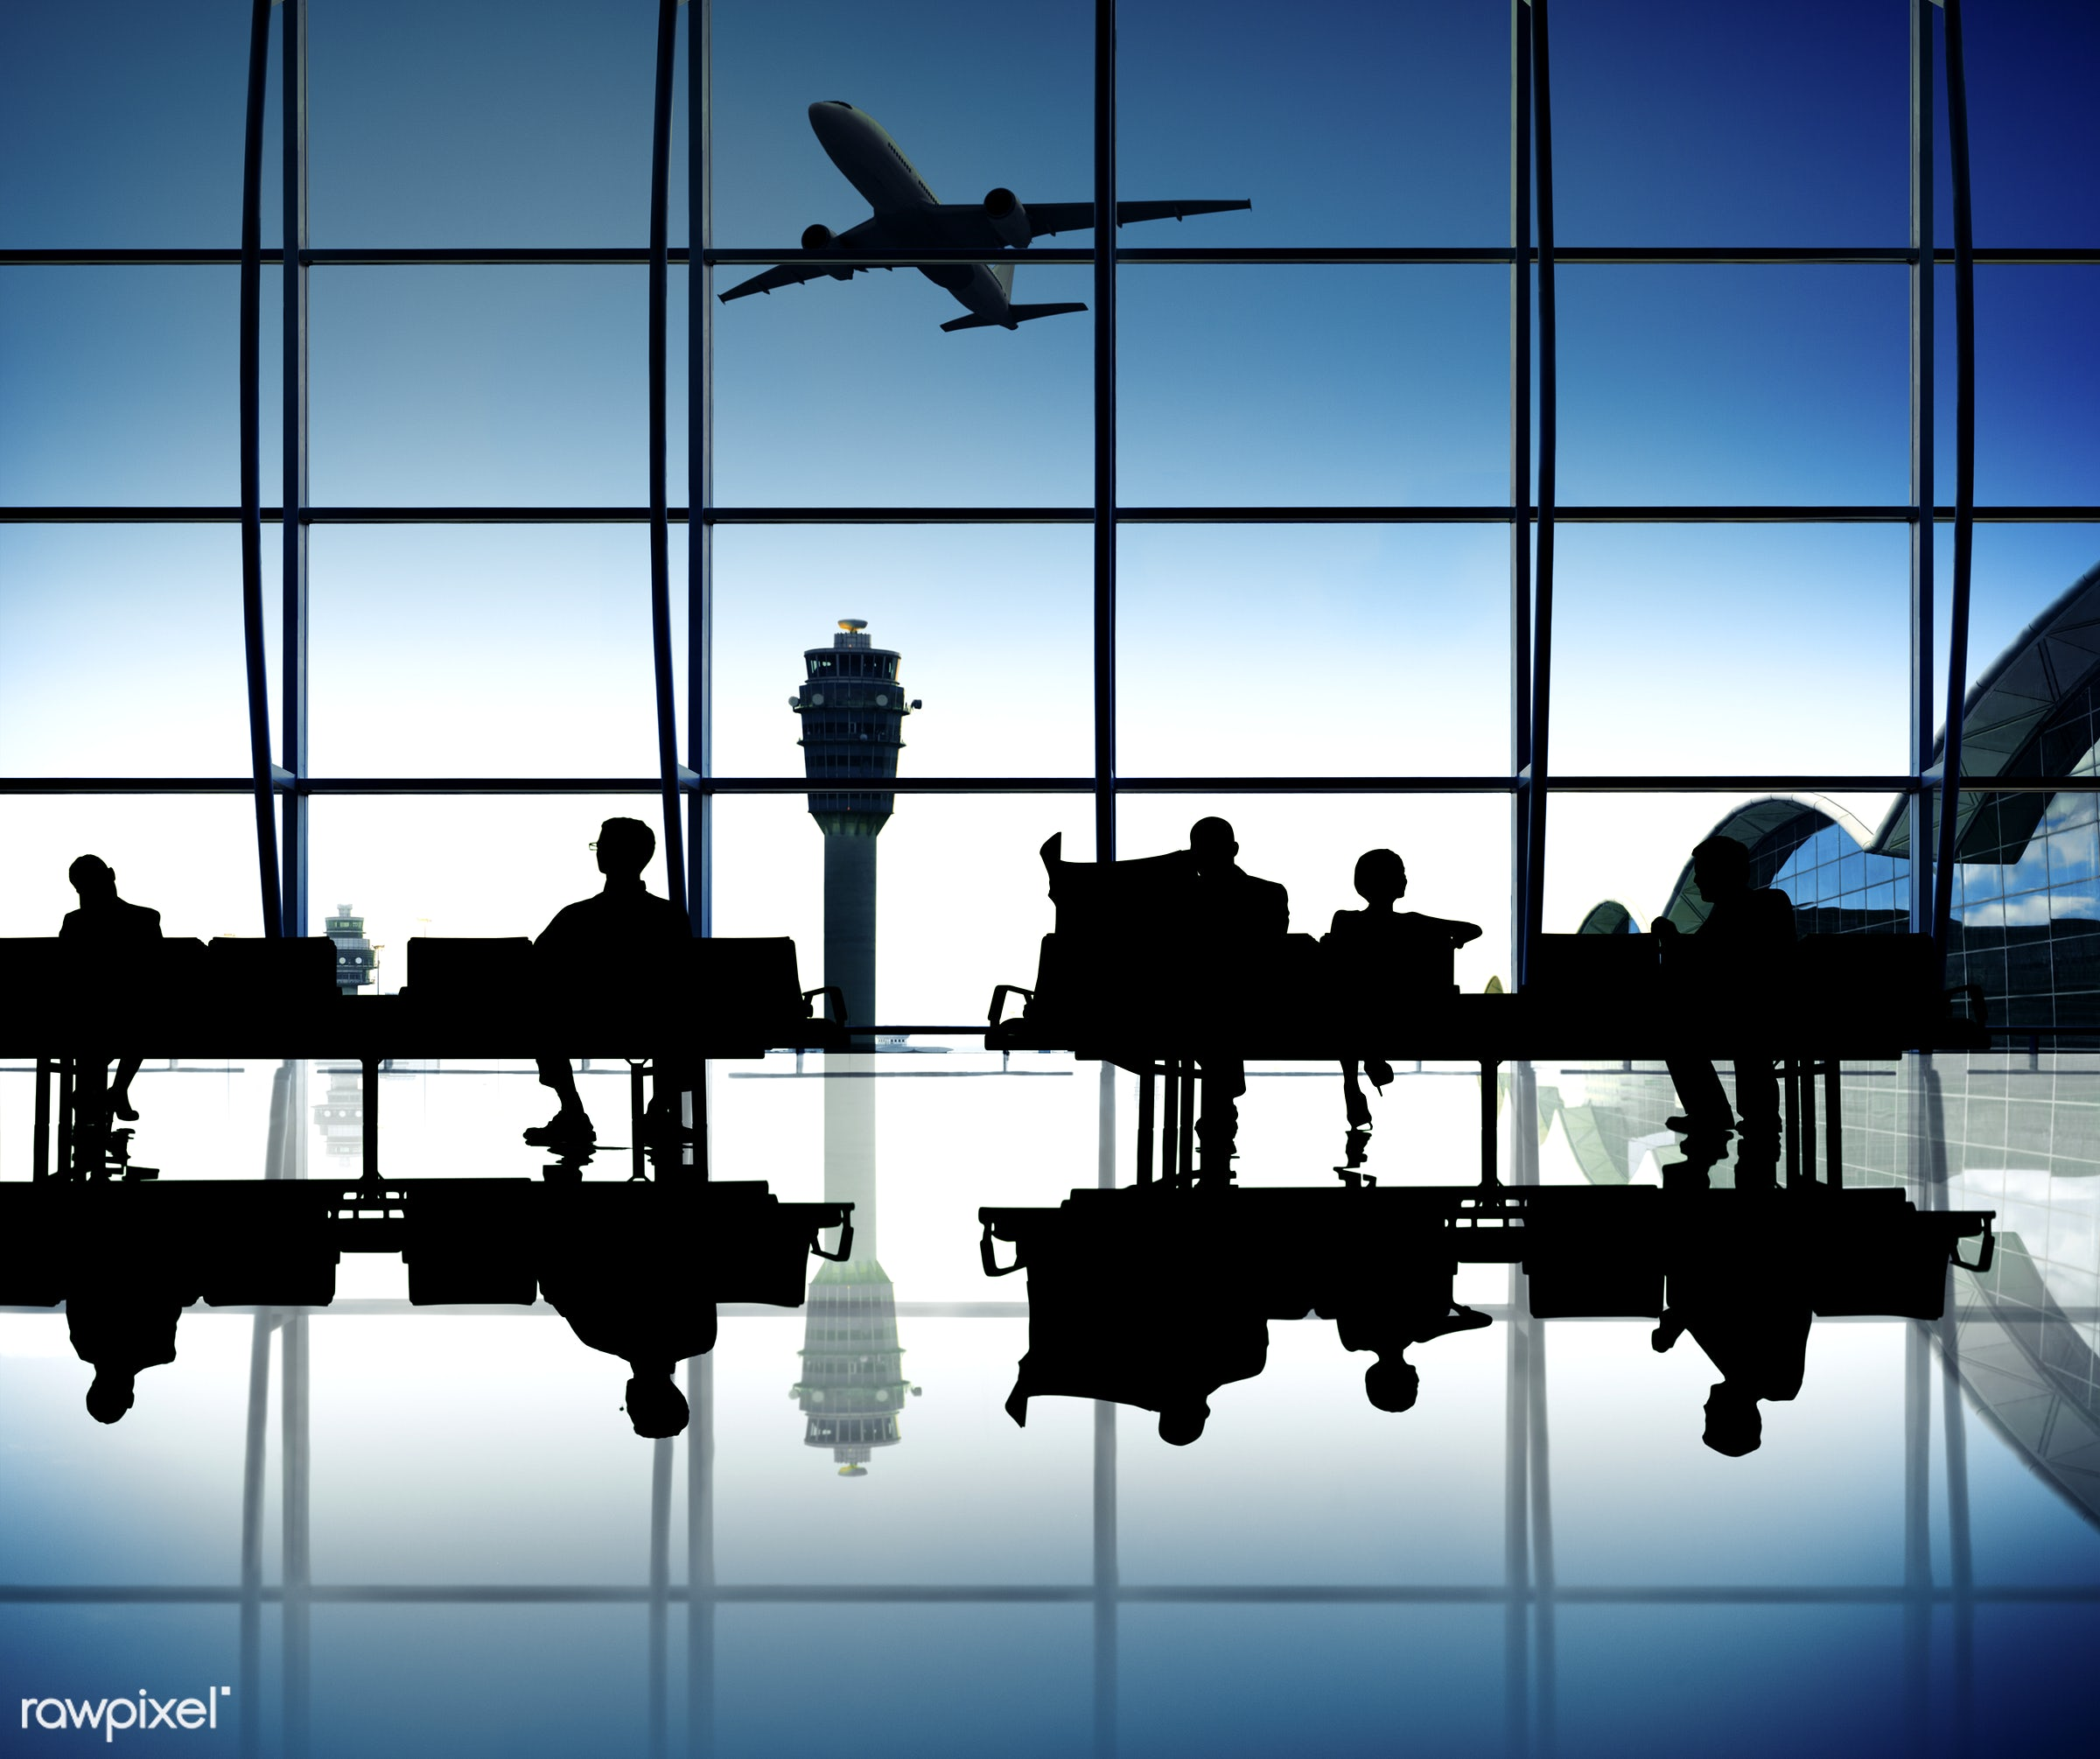 contemporary, aerospace industry, agreement, air traffic control tower, air vehicle, airplane, airport, airport lounge,...